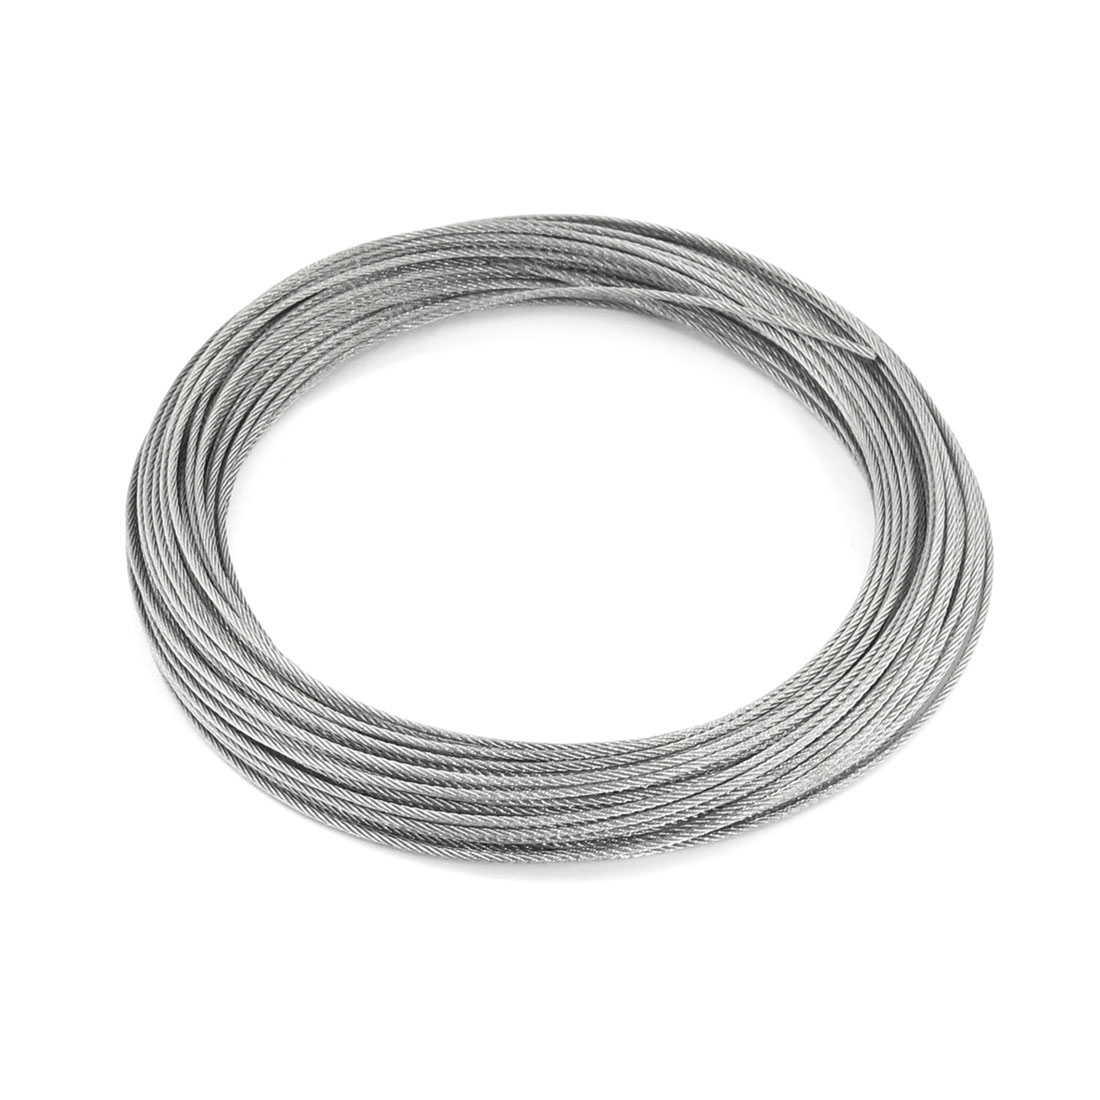 1.5mm Dia 7x7 25M Length Stainless Steel Wire Rope Cable for Hoisting